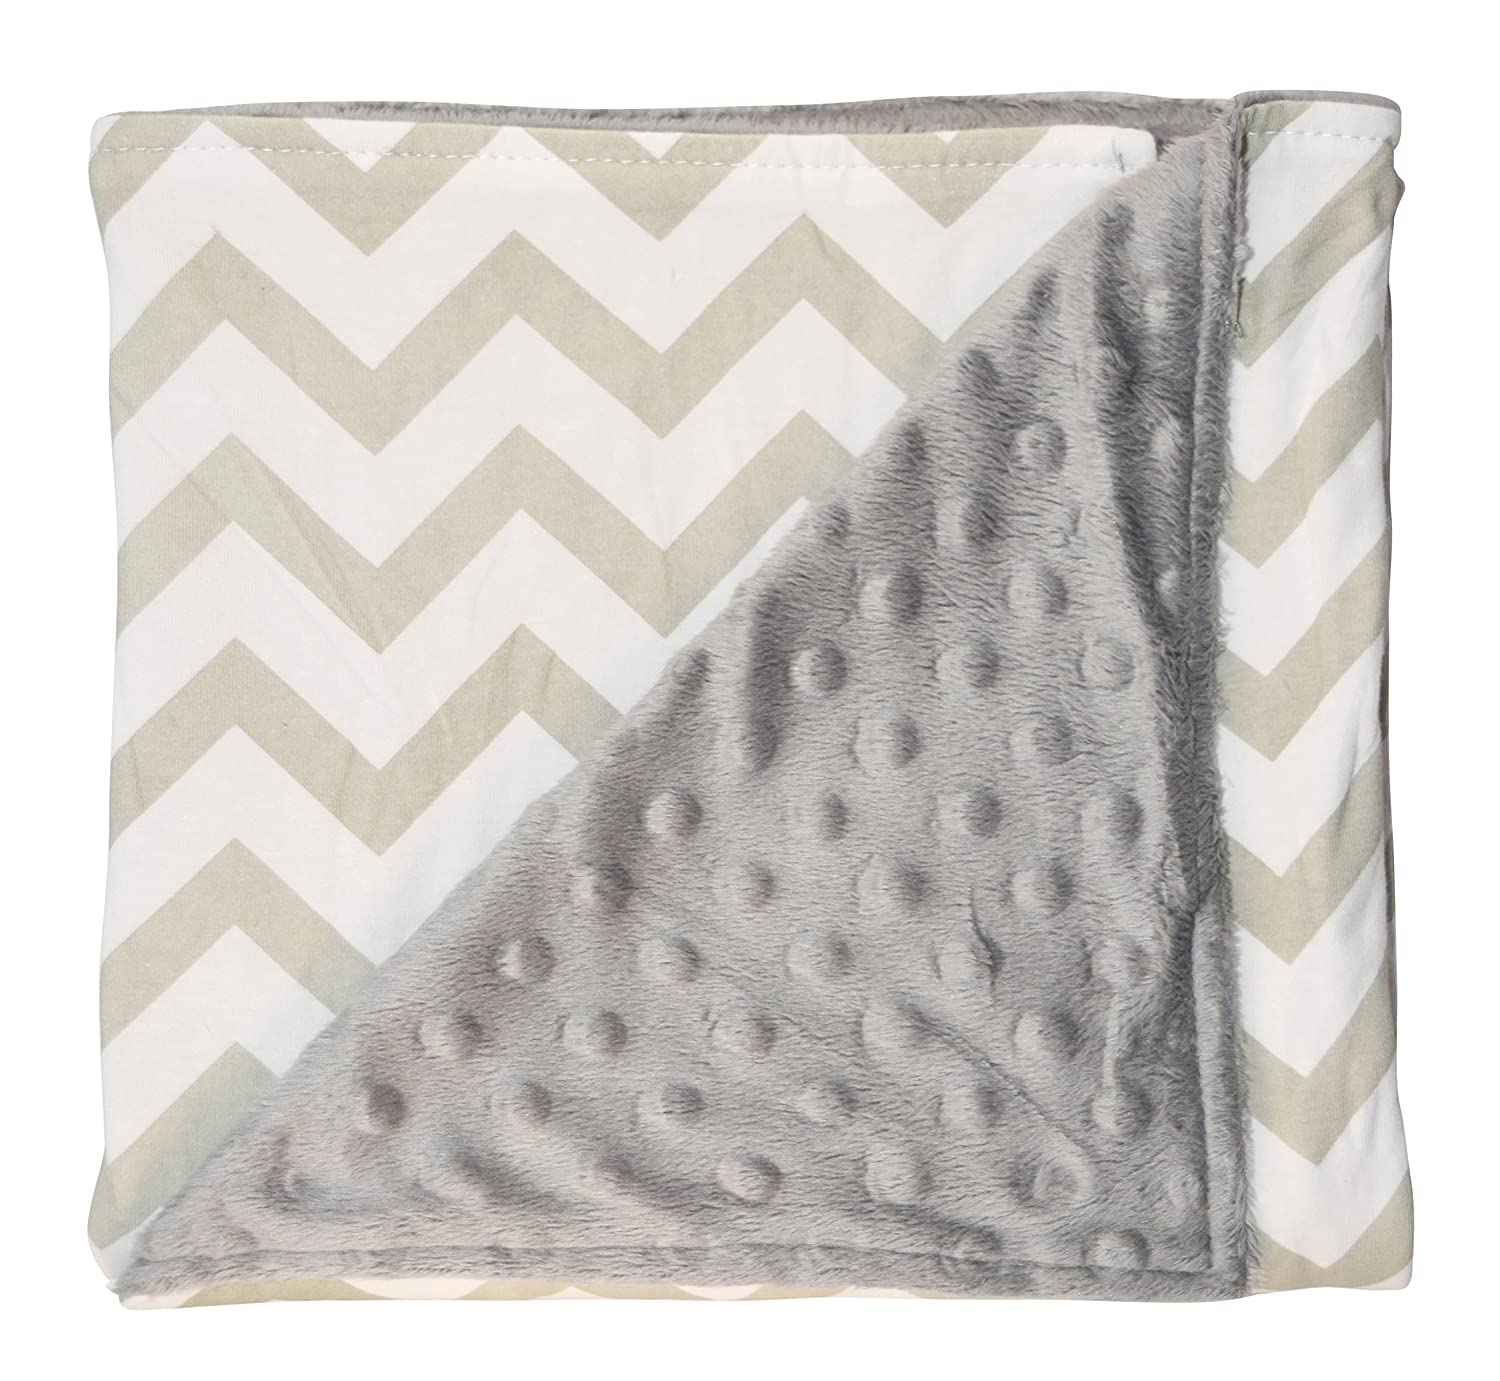 Unique Baby Trendy Blanket with Straight Edges Chevron Print Grey by Unique Baby   B01BT9AGIG